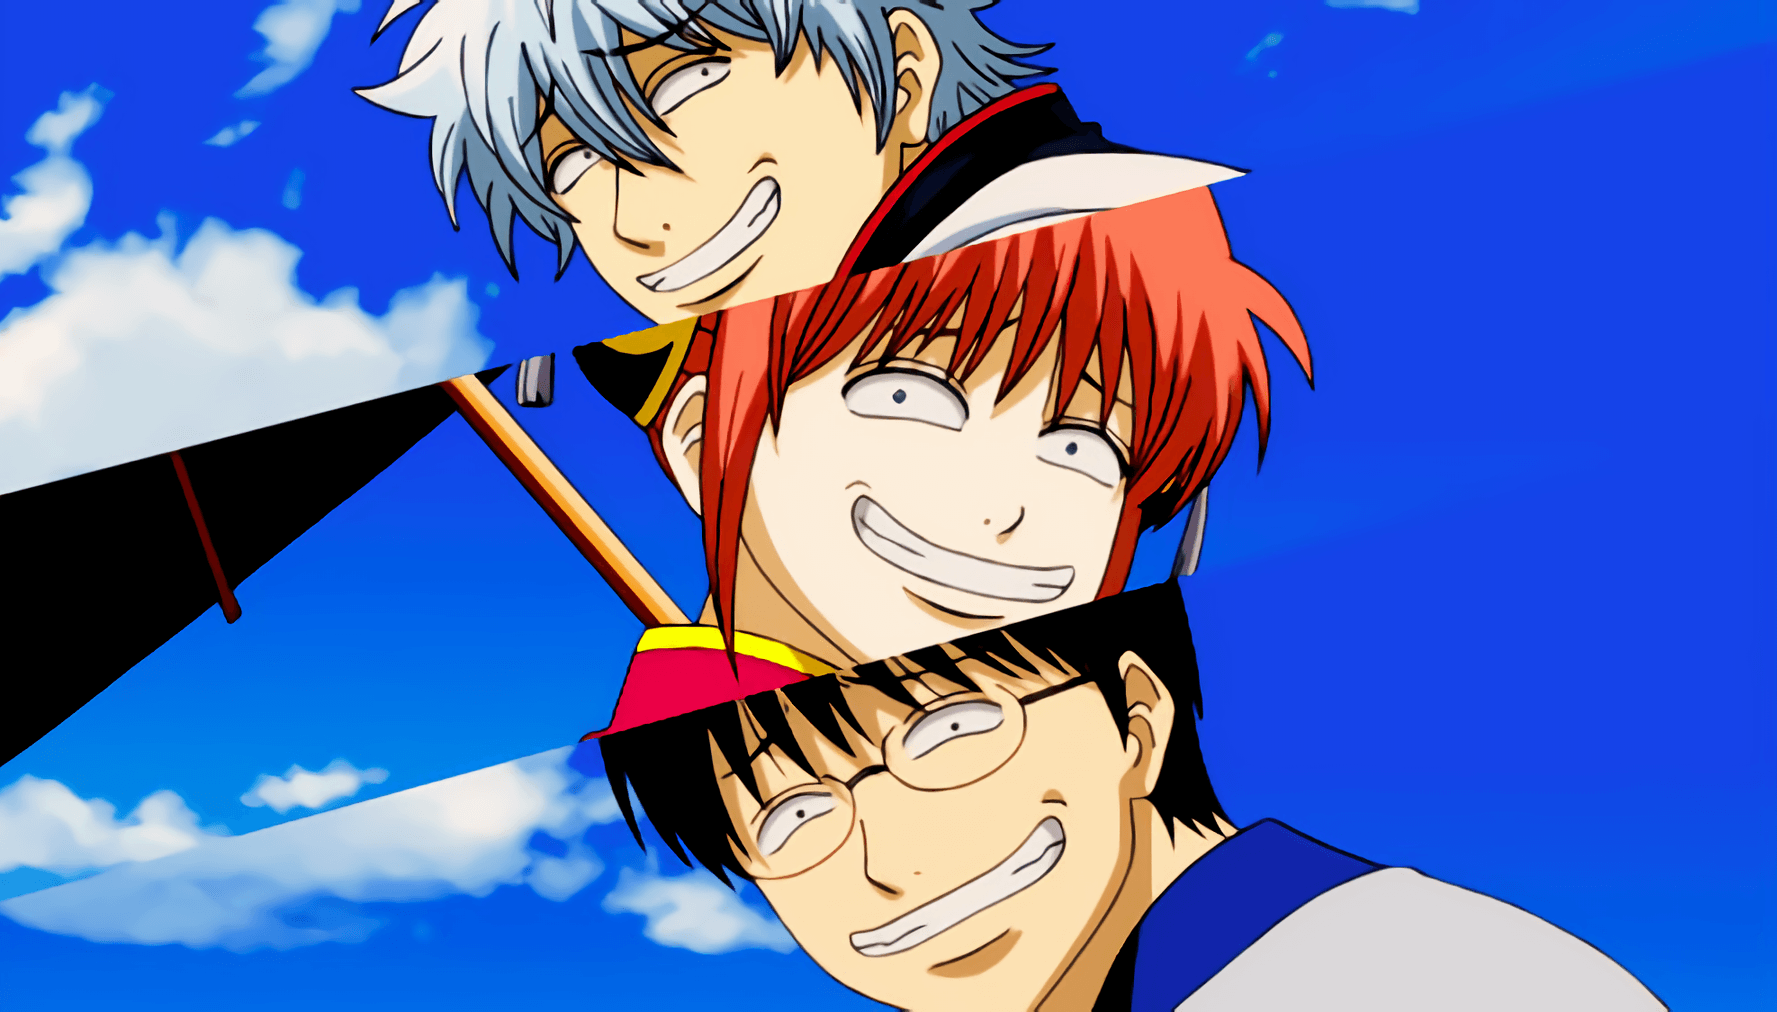 series anime gintama